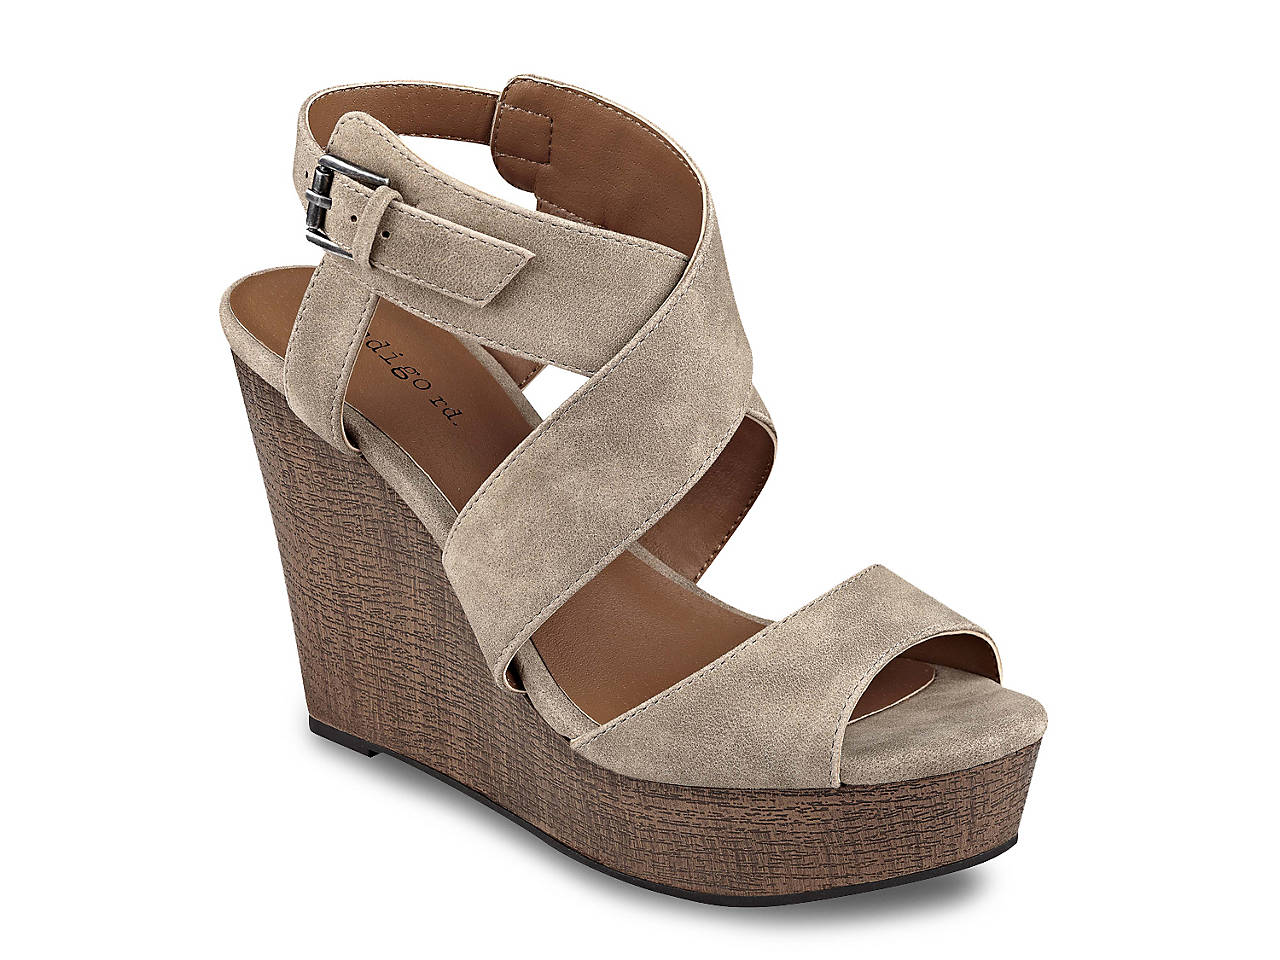 Kamryn Wedge Sandal by Indigo Rd.